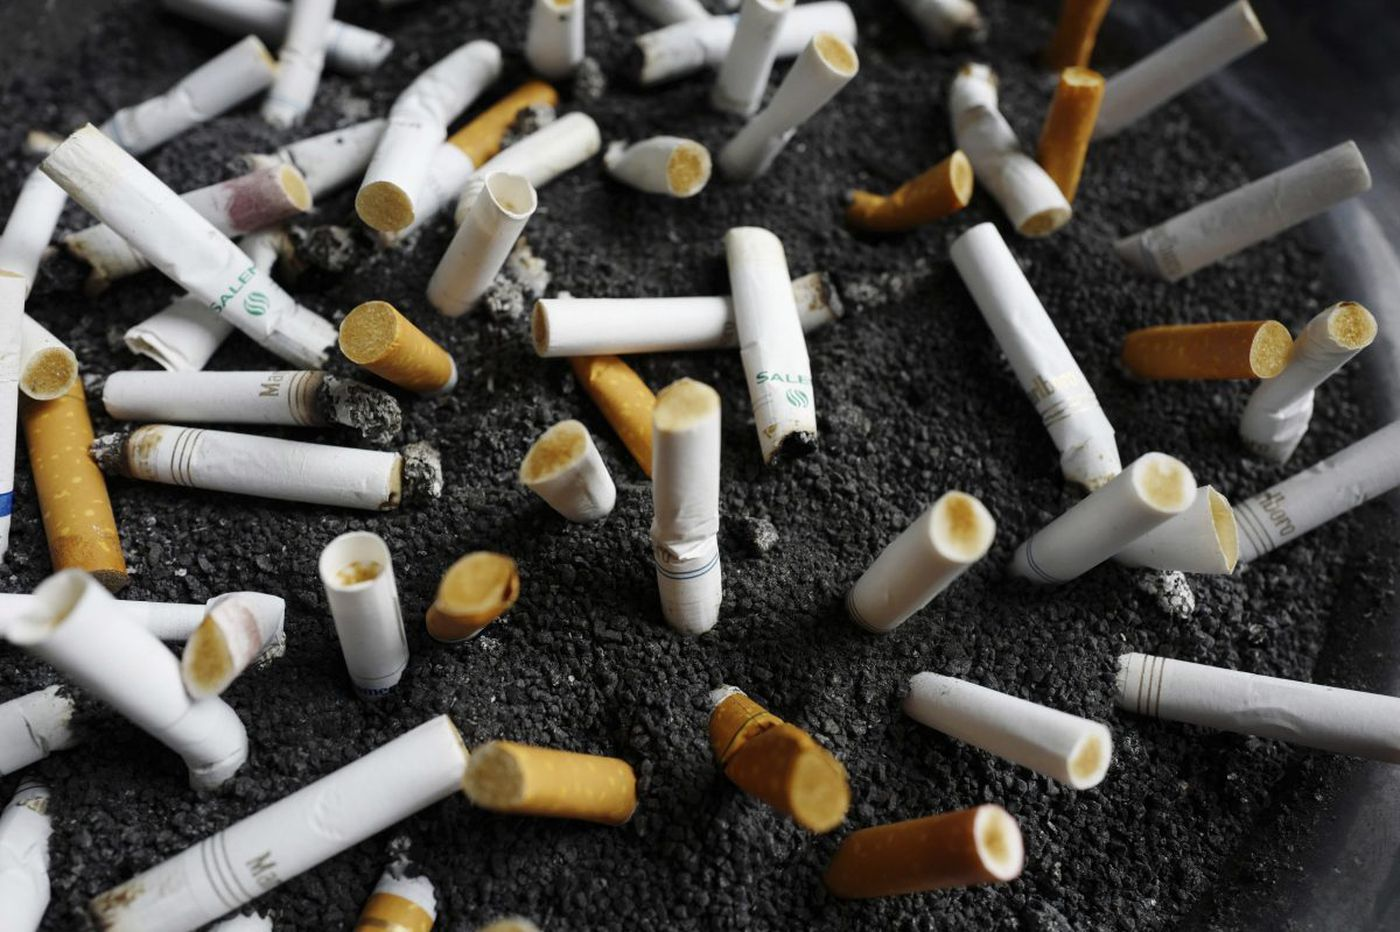 Tobacco industry starts major ad campaign - against its own deadly products